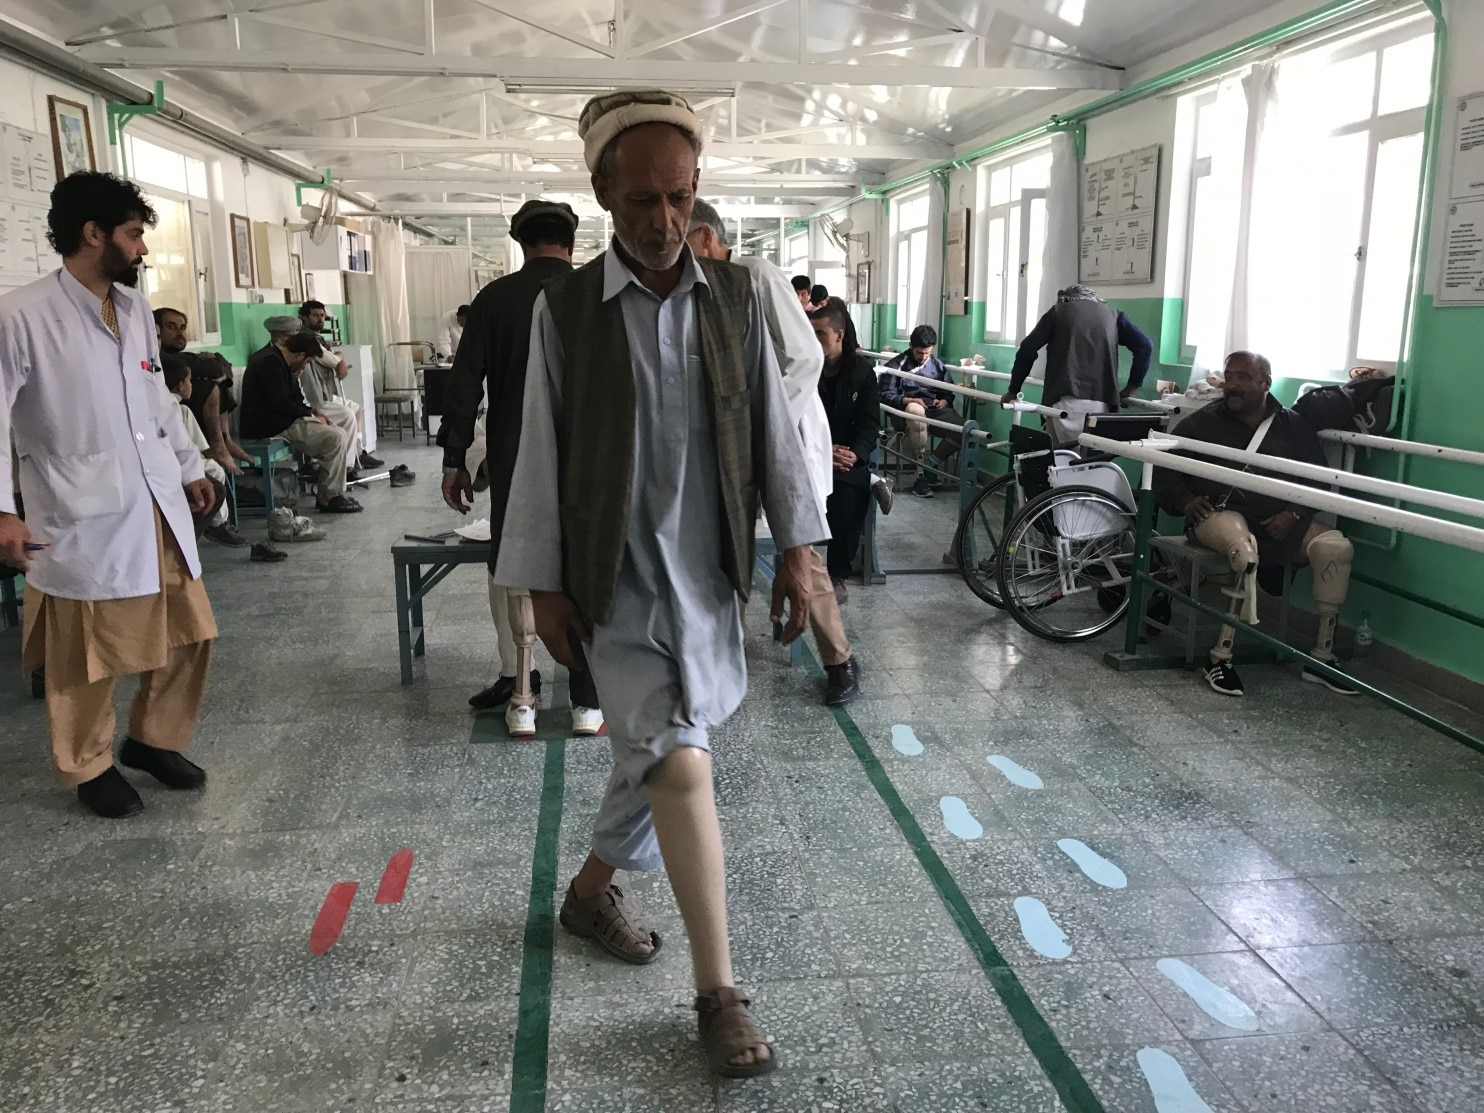 AFGHANISTAN NEWS AND VIEWS: Violence is so bad in parts of Afghanistan that Red Cross clinics are shutting their doors